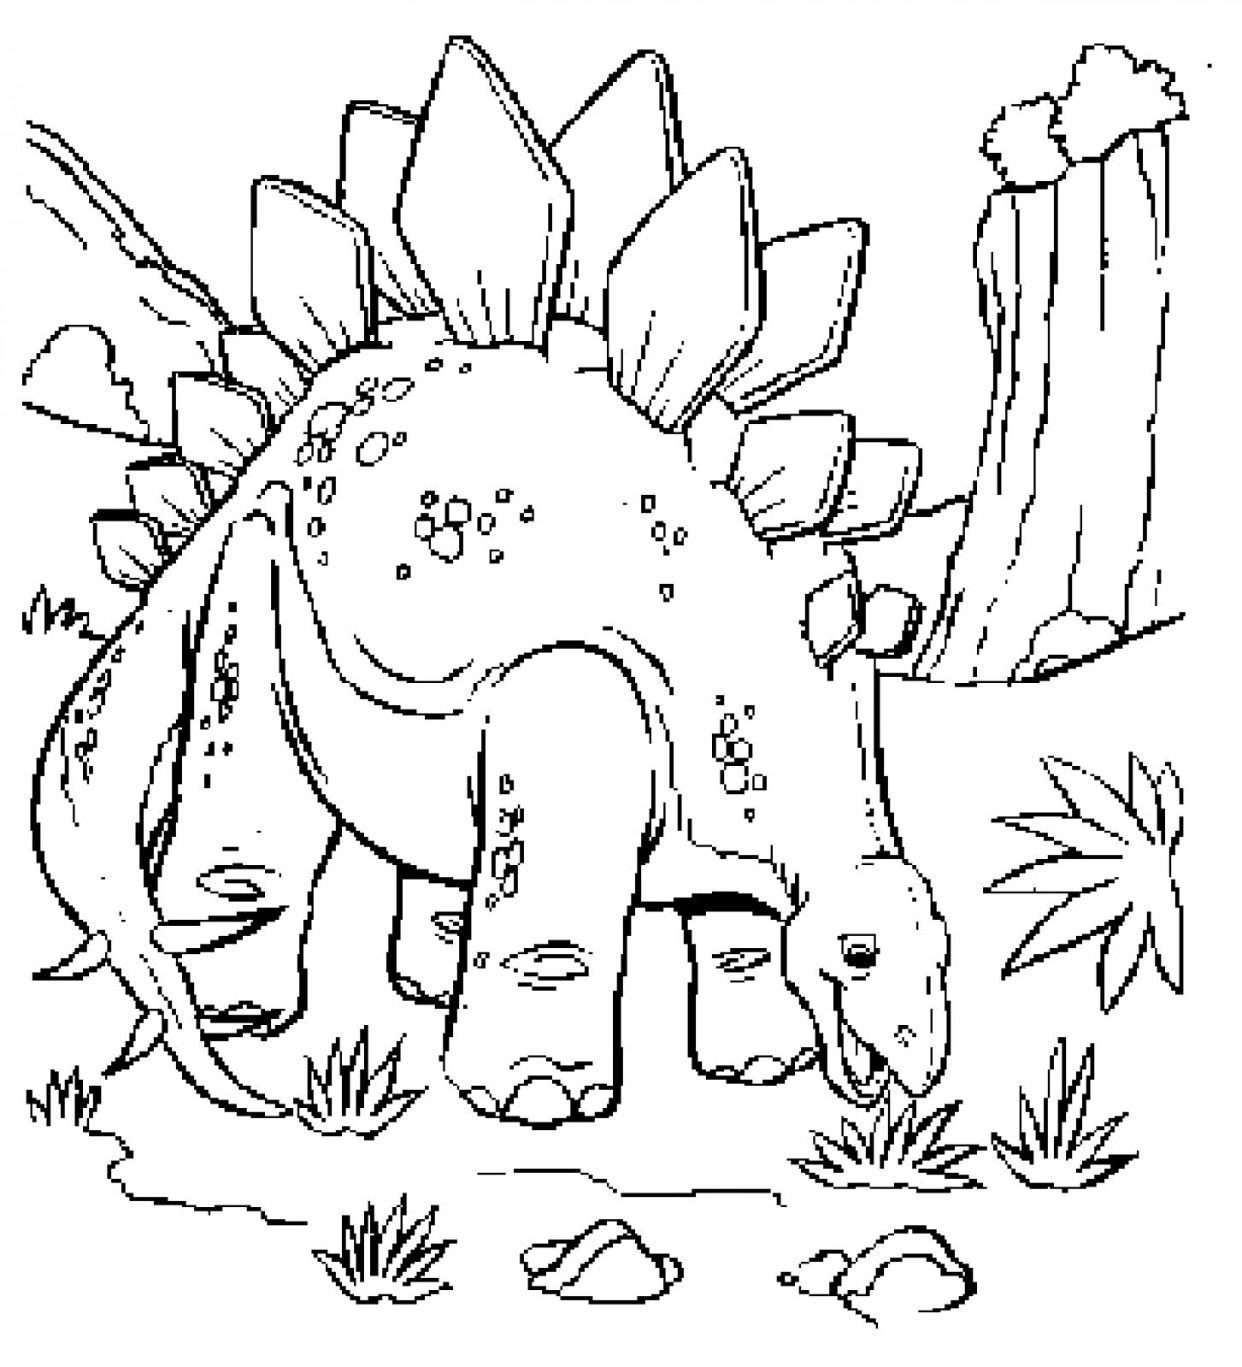 Childrens coloring dinosaur pages - Jurassic Park Dinosaur Eat 2 Coloring Page